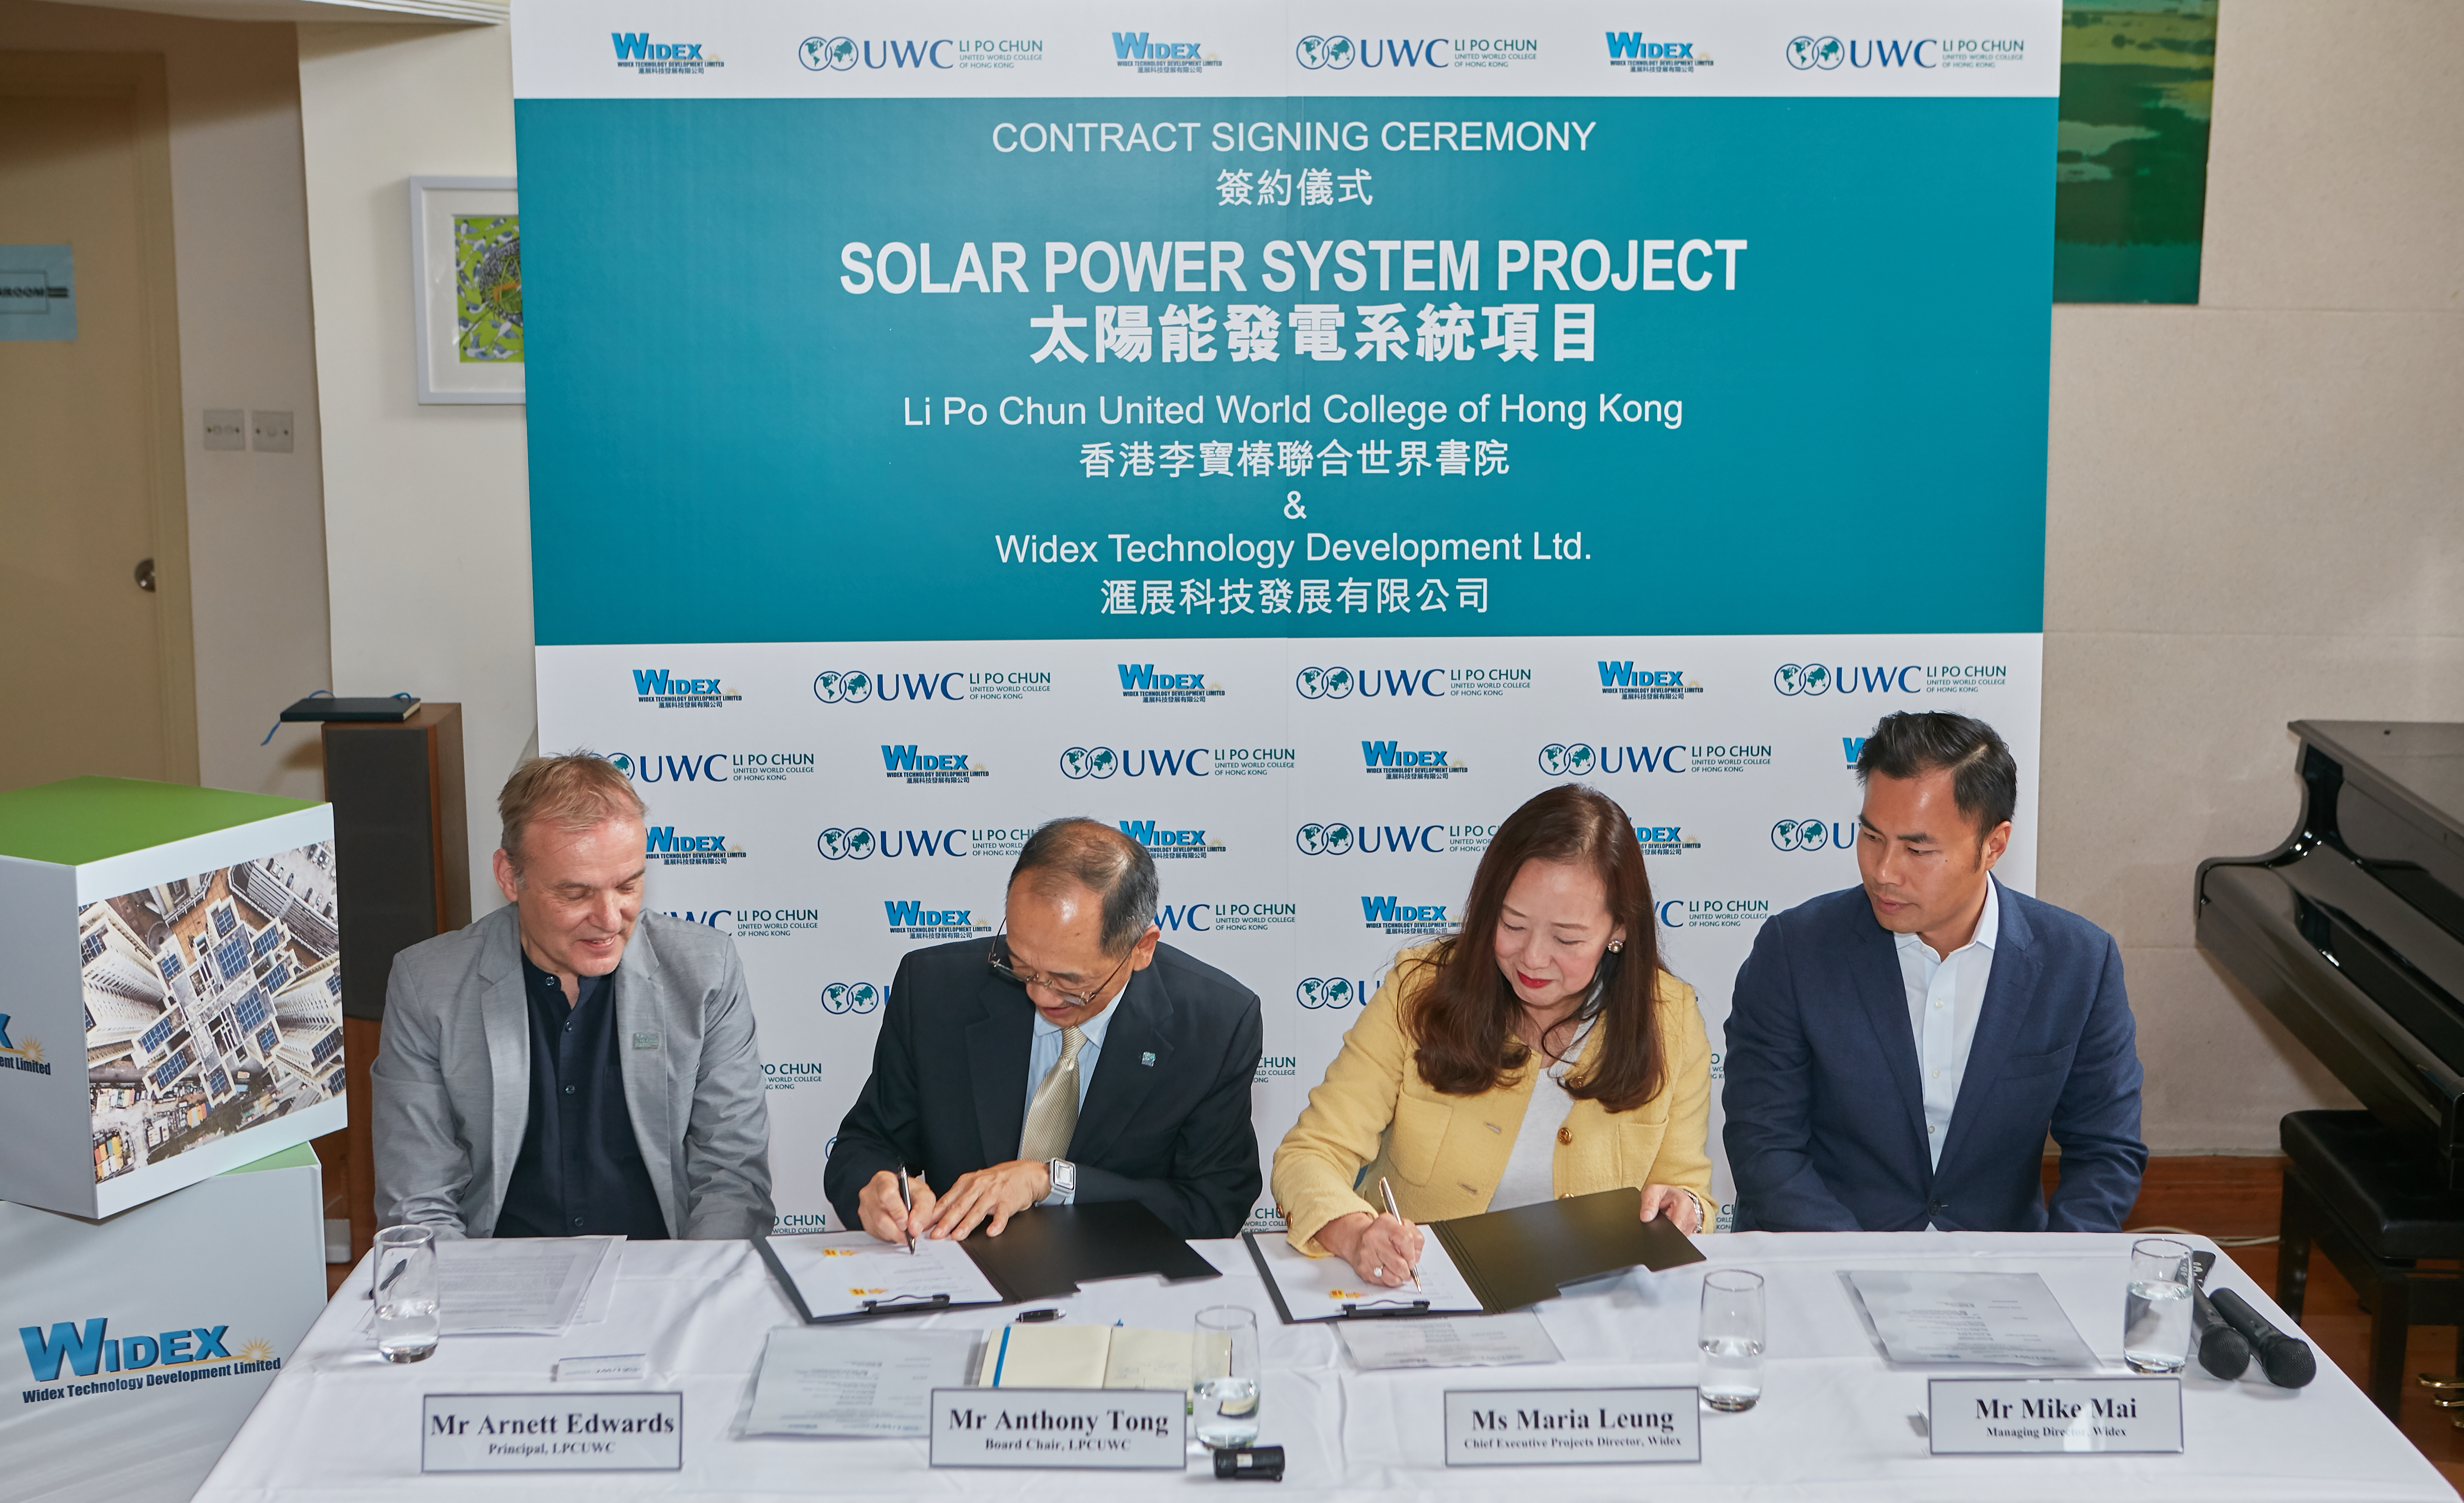 PHOTO: LPCUWC Board Chair Anthony Tong, second from left, signs the contract on the solar power system project on campus, with Widex Chief Executive Projects Director Maria Leung. Looking on are LPCUWC Principal Arnett Edwards, first from left, and Widex Managing Director Mike Mai.